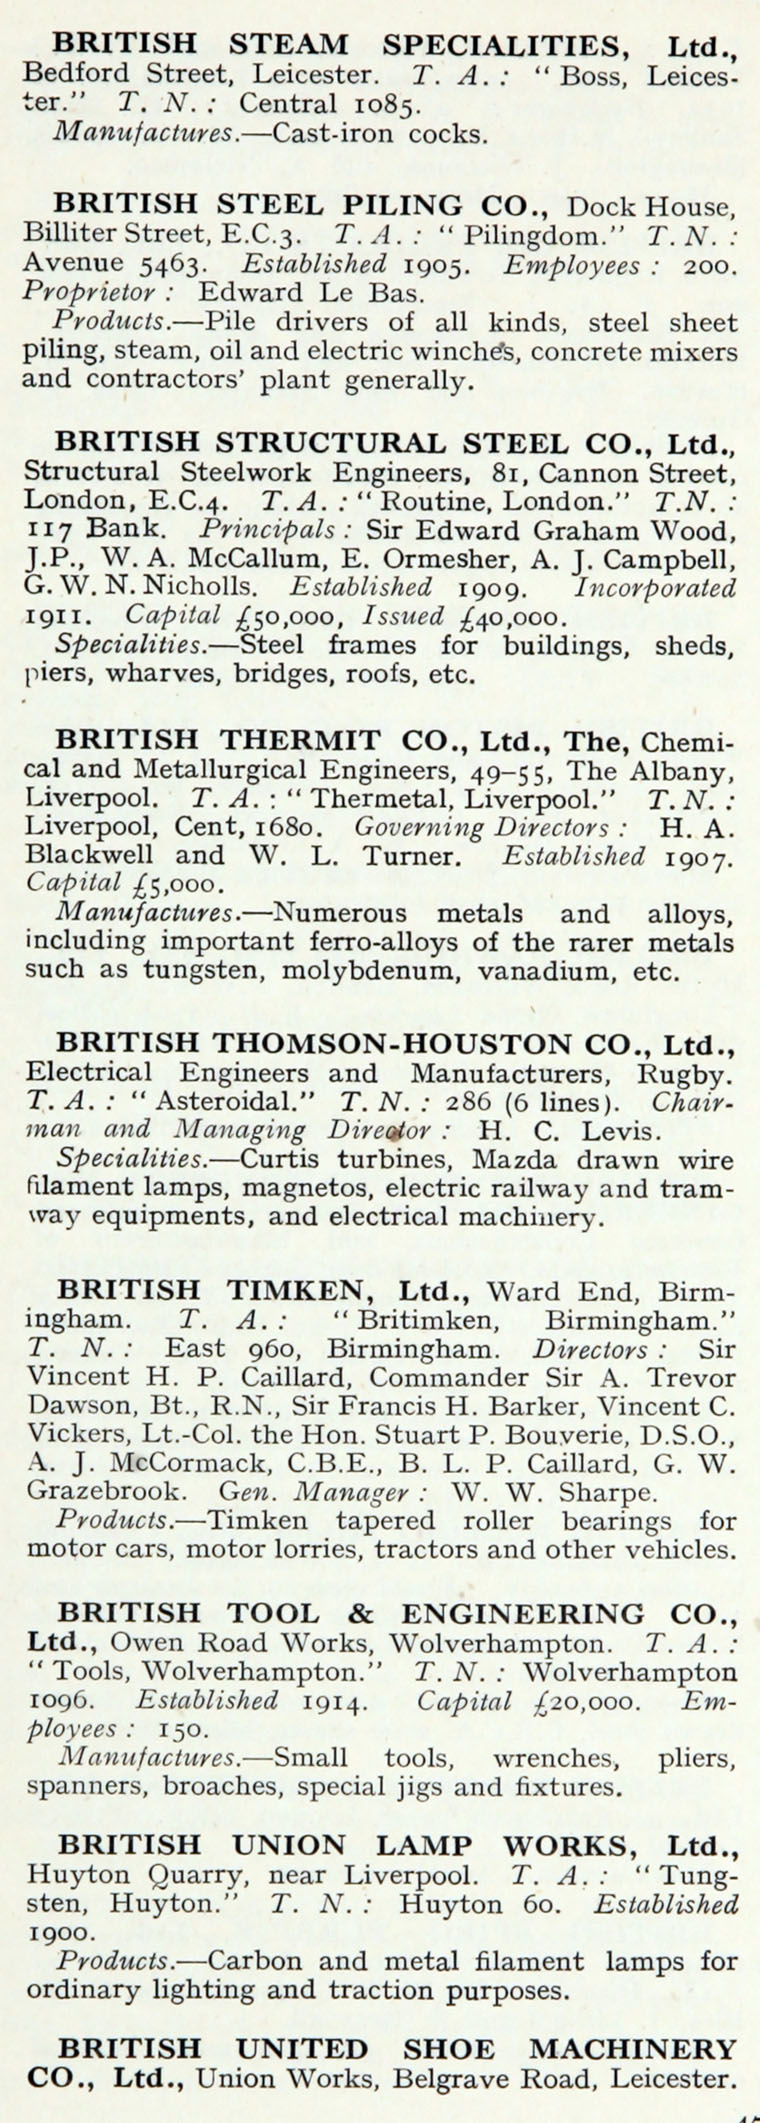 1922 Whos Who In Engineering Company B Wiring Gt Tools For Testers Circuit Tester Hopkins Im1921bwwe P472a